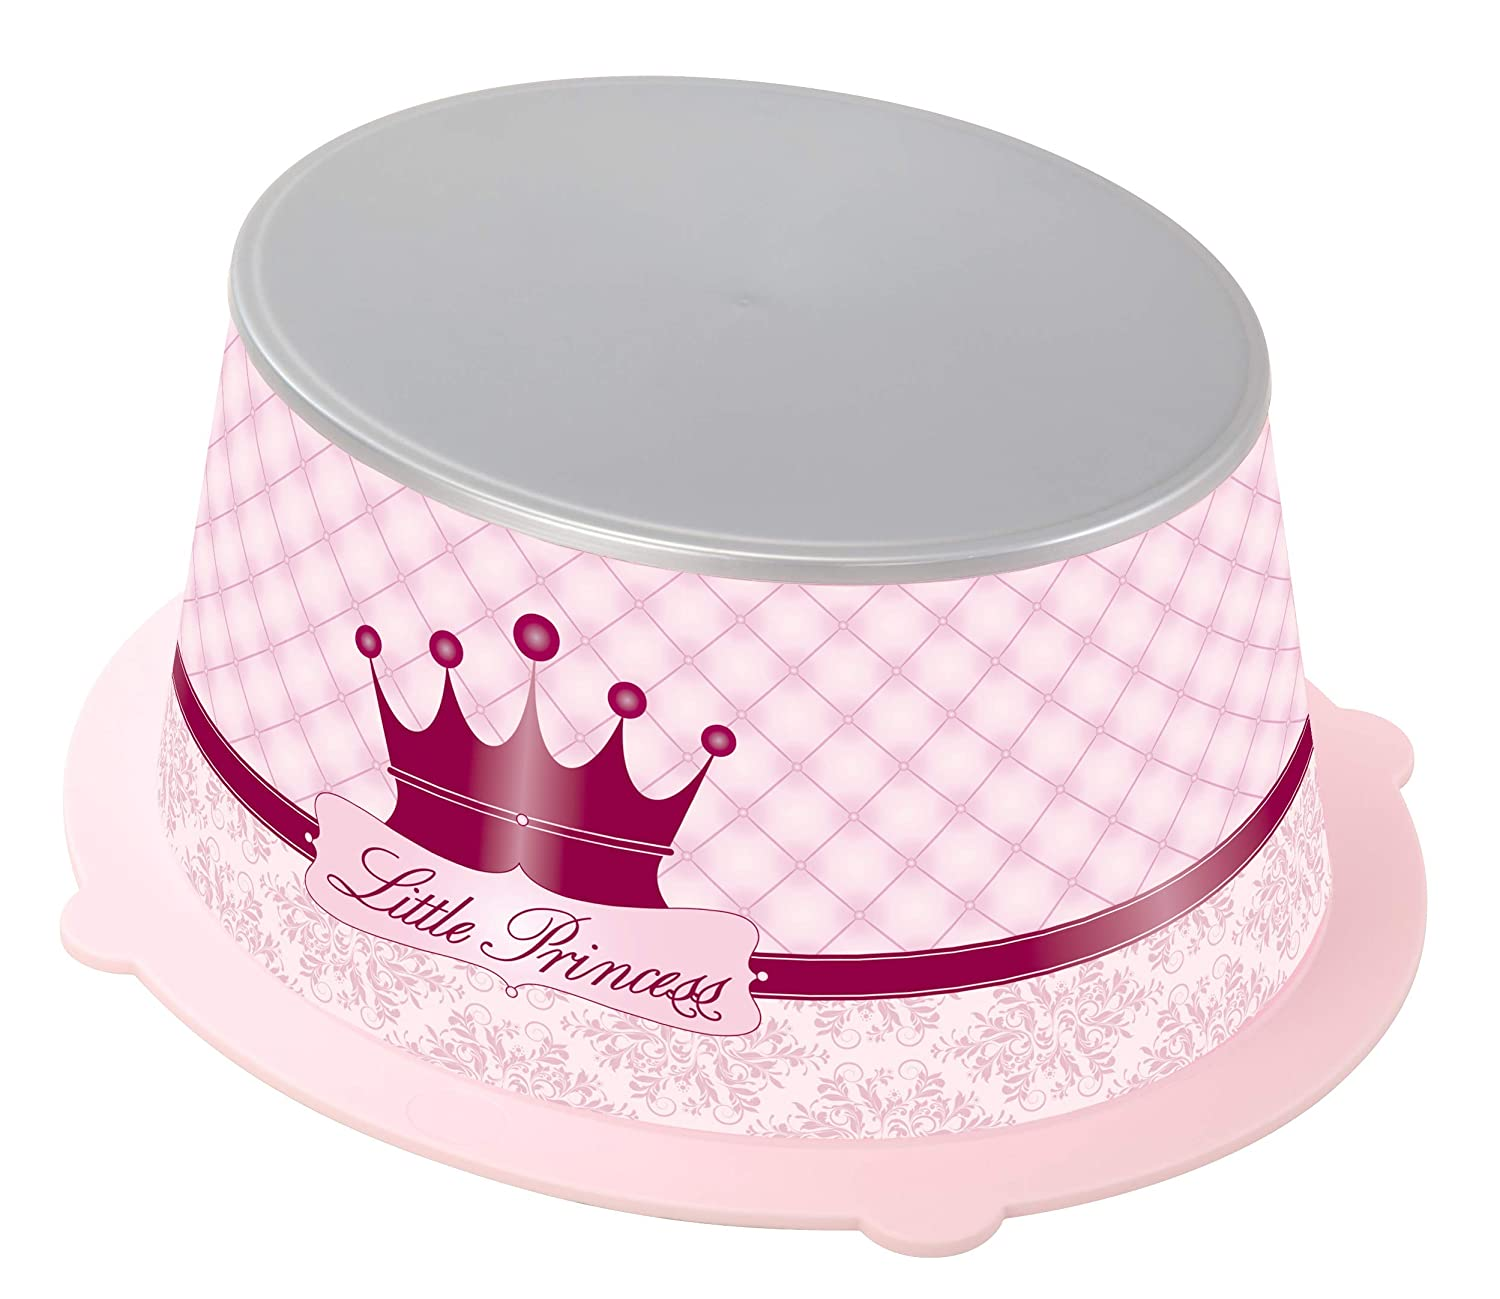 Rotho Babydesign Little Princess StyLe! Step Stool, Anti-Slip Surface, StyLe!, Pink, 202160208BG 20216 0208 BG